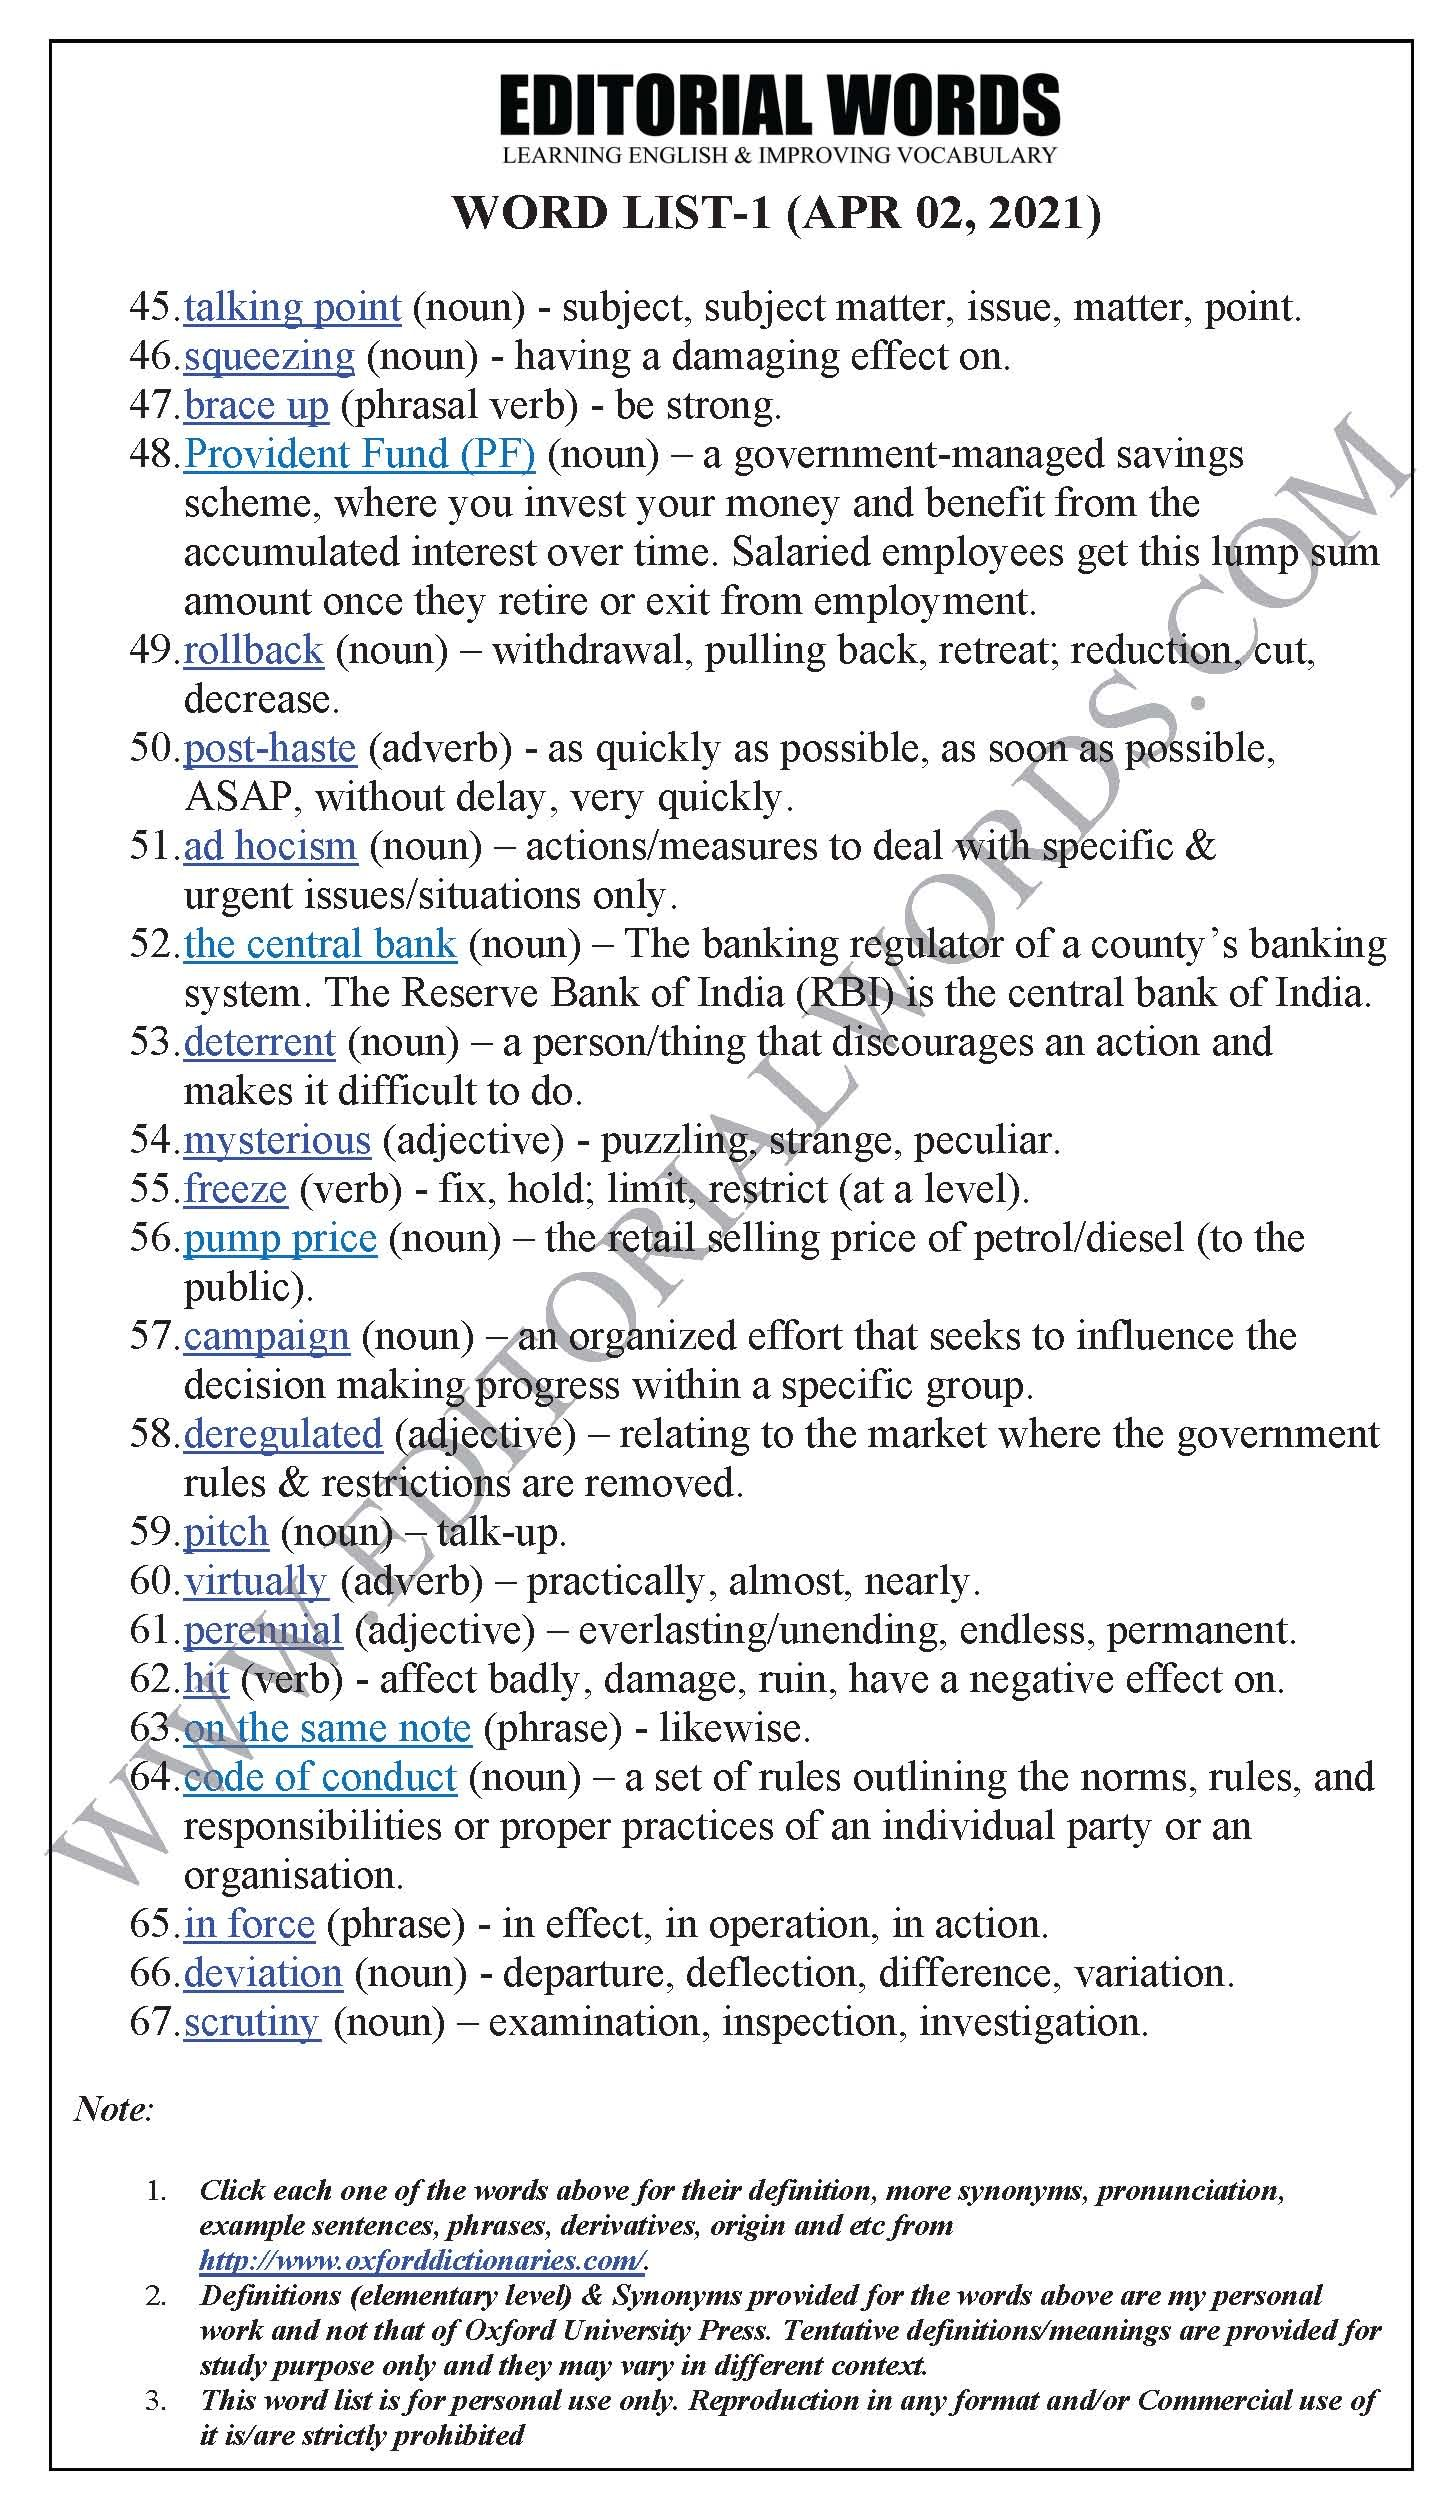 The Hindu Editorial (Overseeing oversights) – Apr 02, 2021